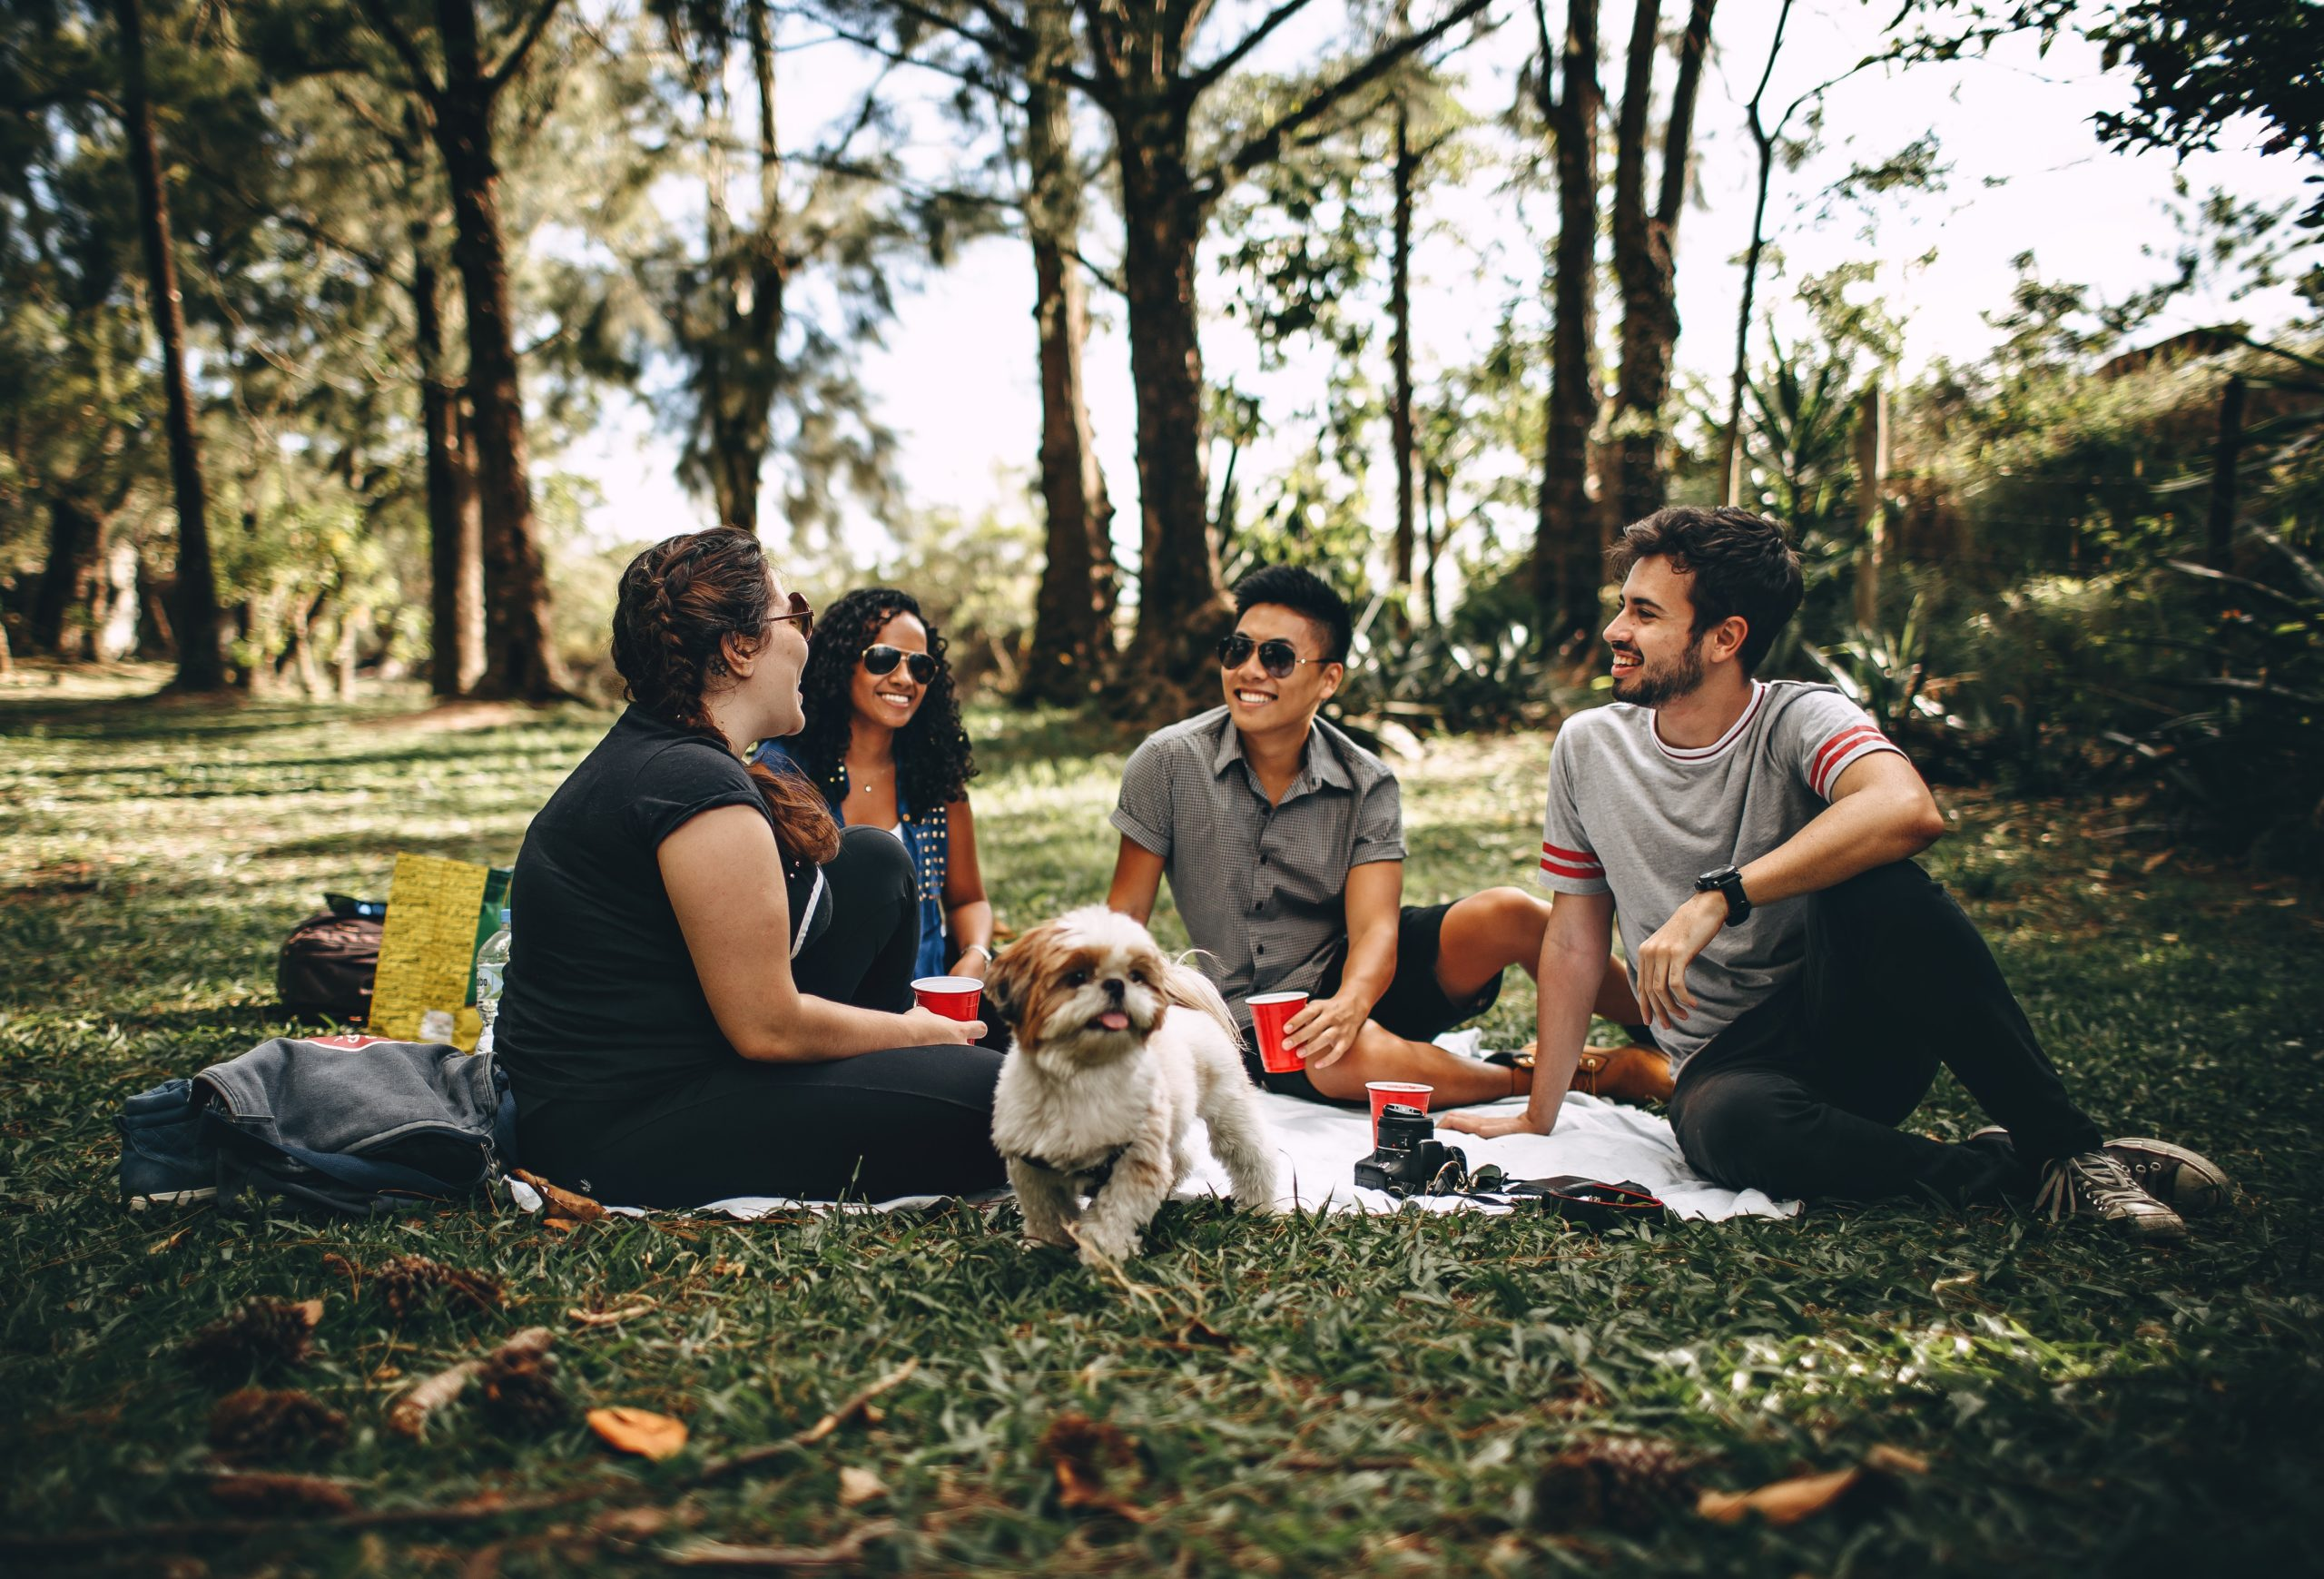 Group of people laying on blanket with dog